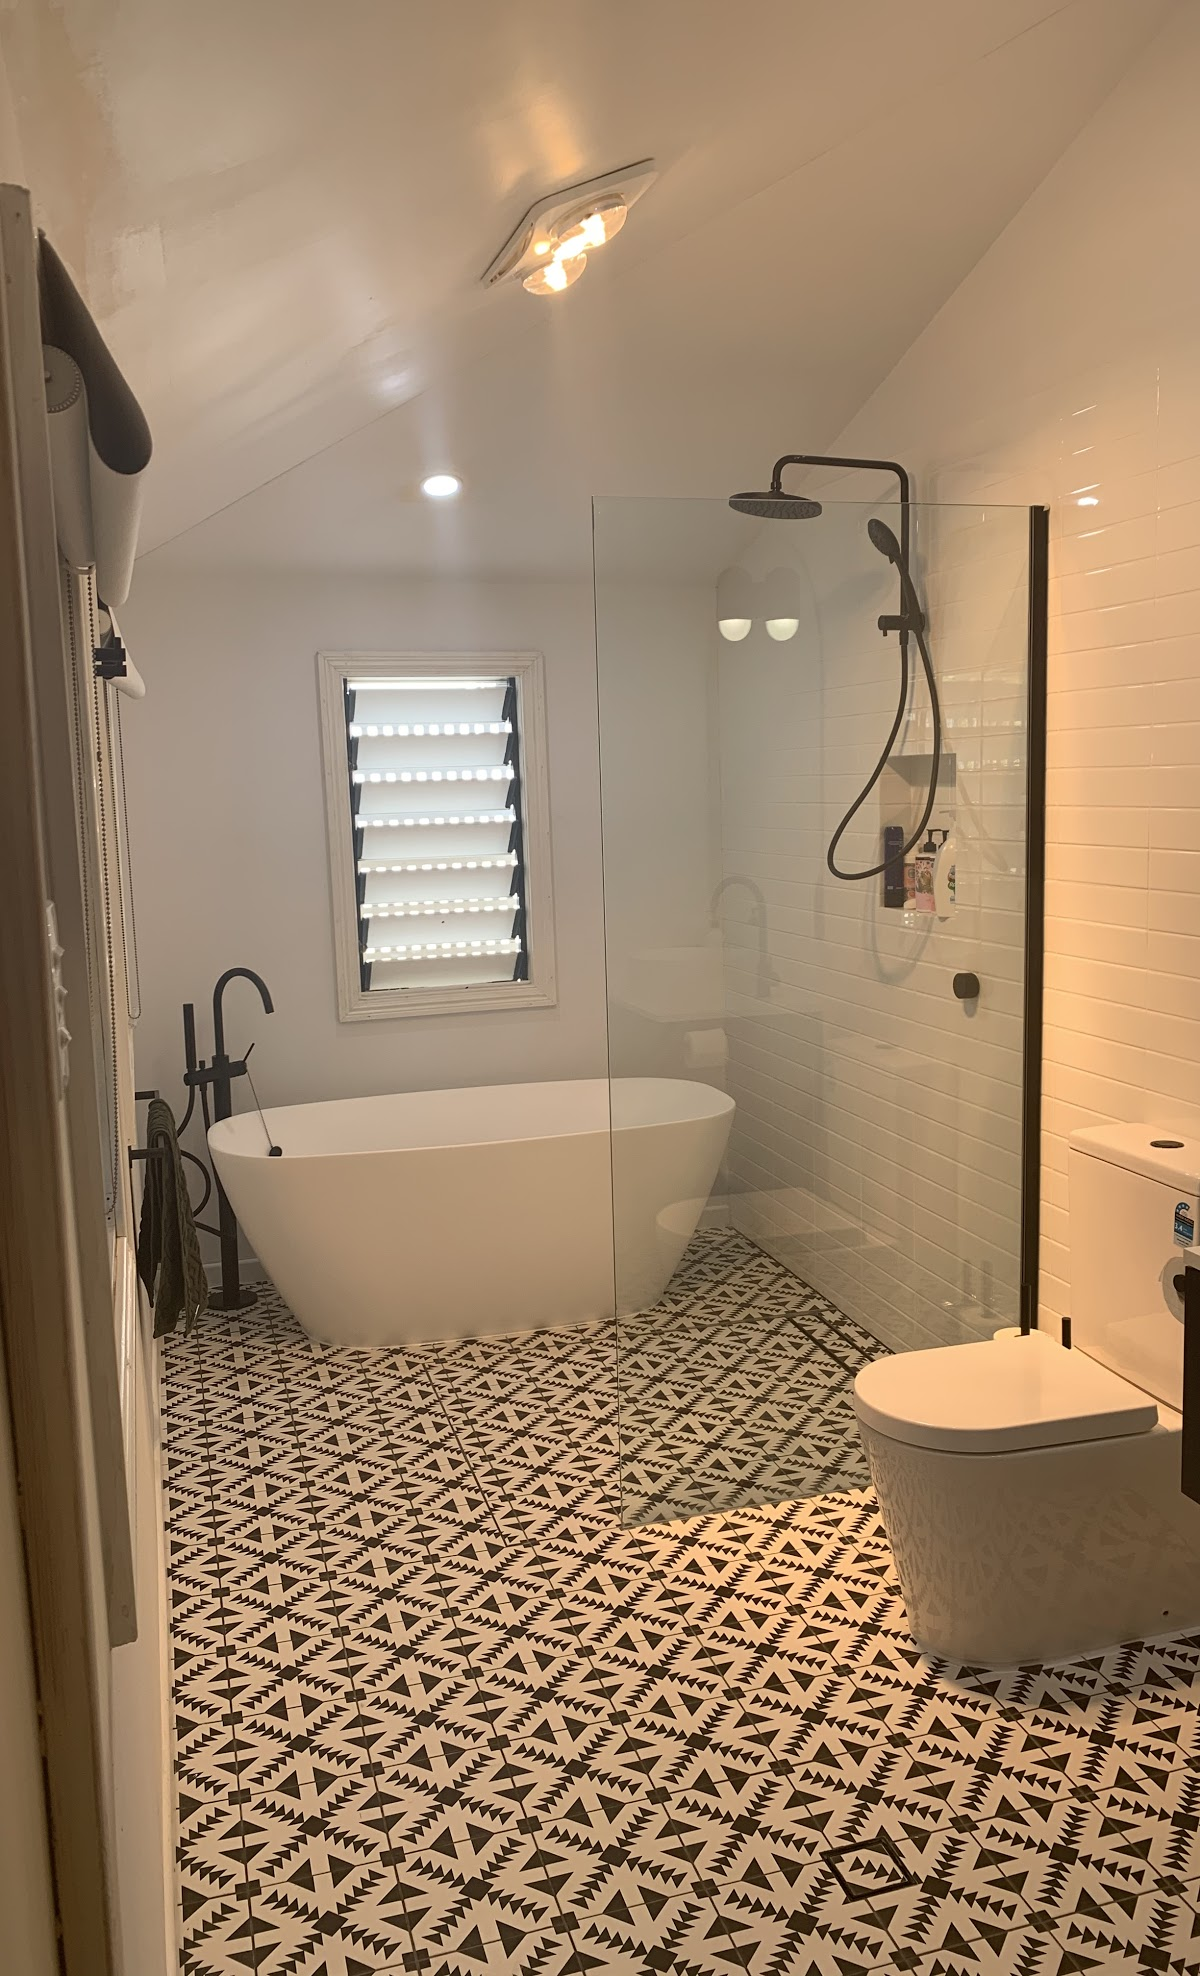 white marble bathroom with a toilet and shower that has mosaic floor tiles